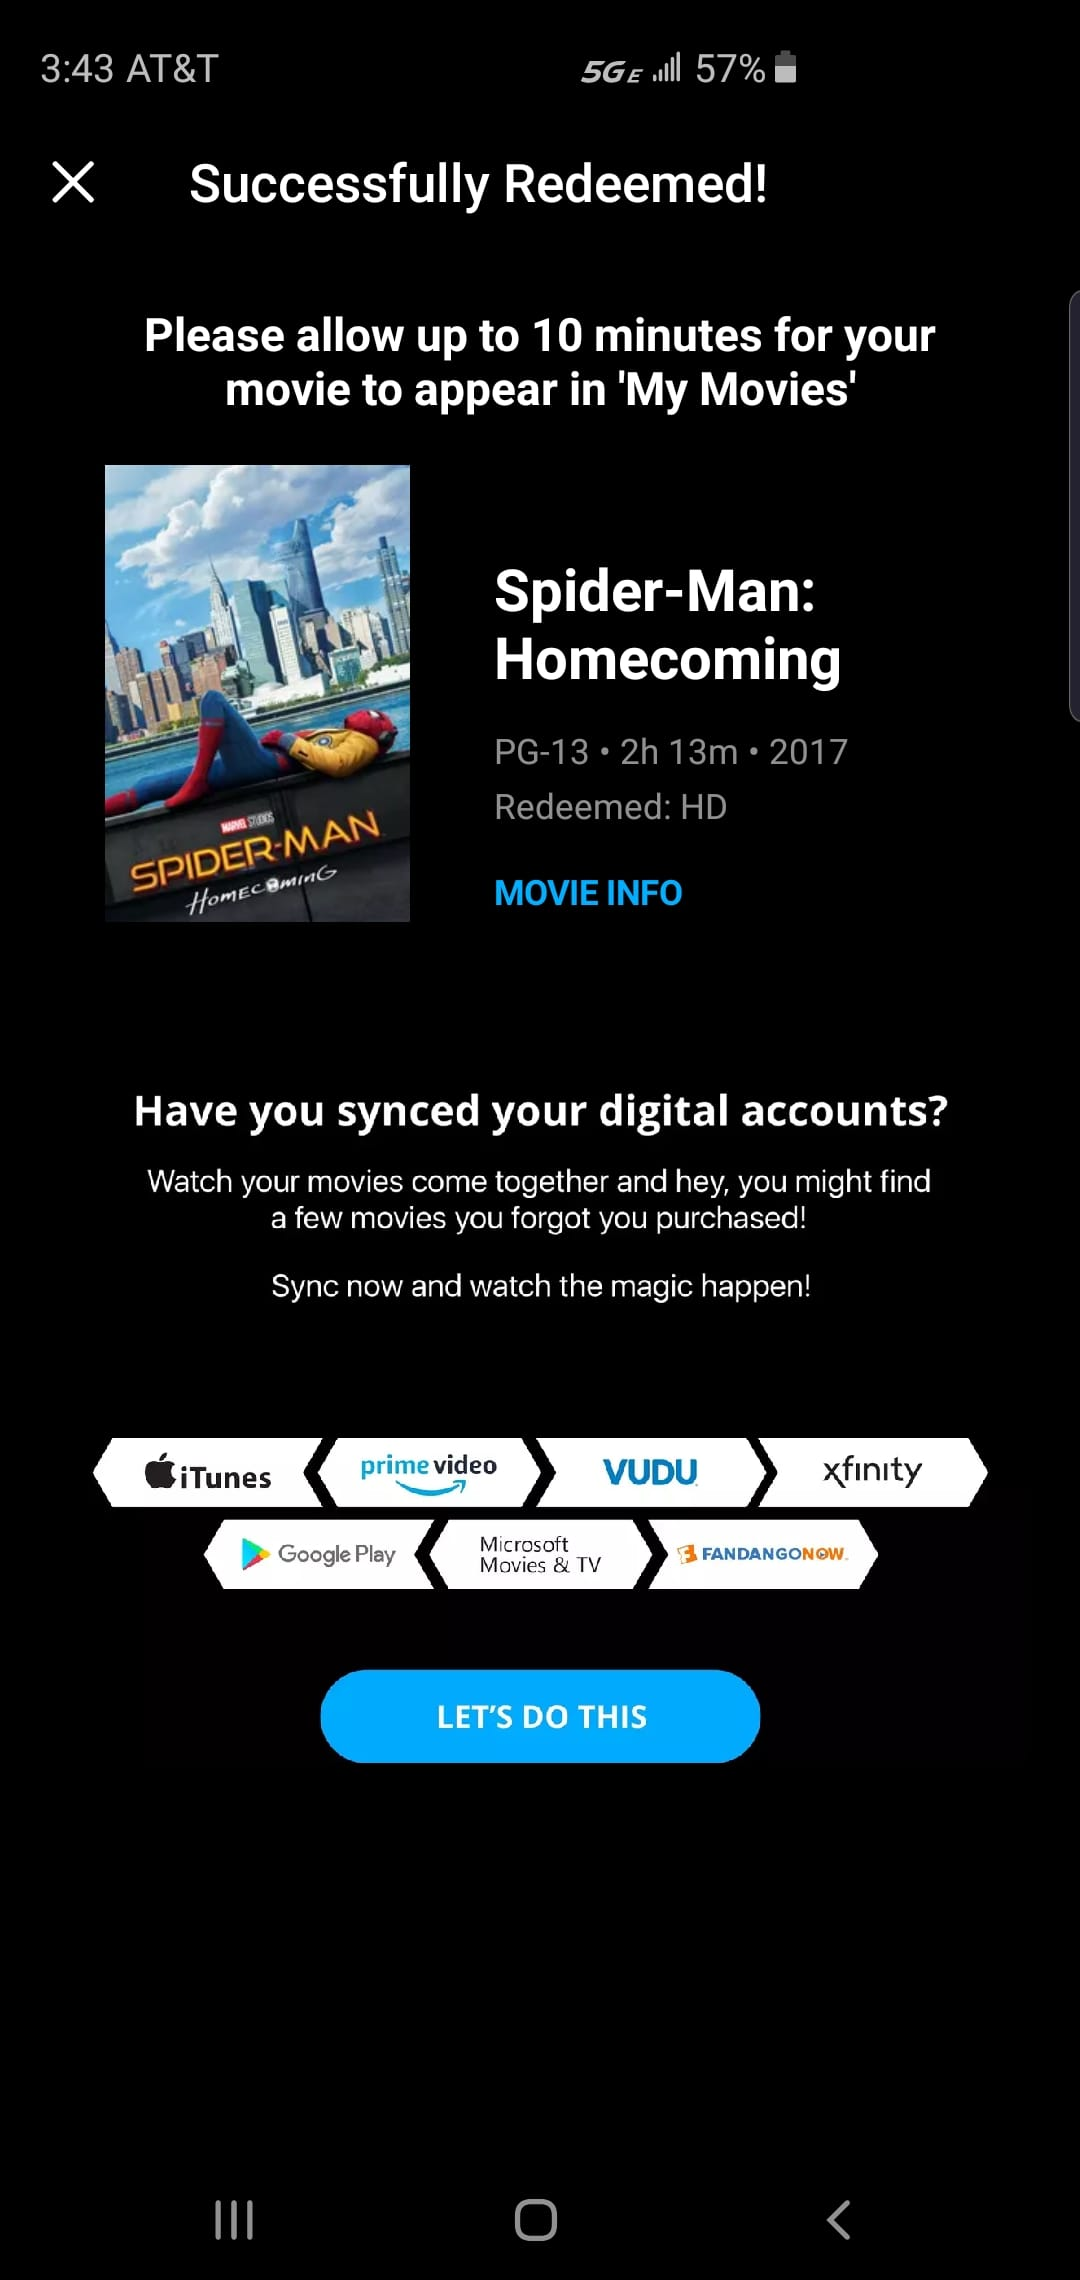 FREE Spider-Man: Homecoming movie download - Slickdeals net